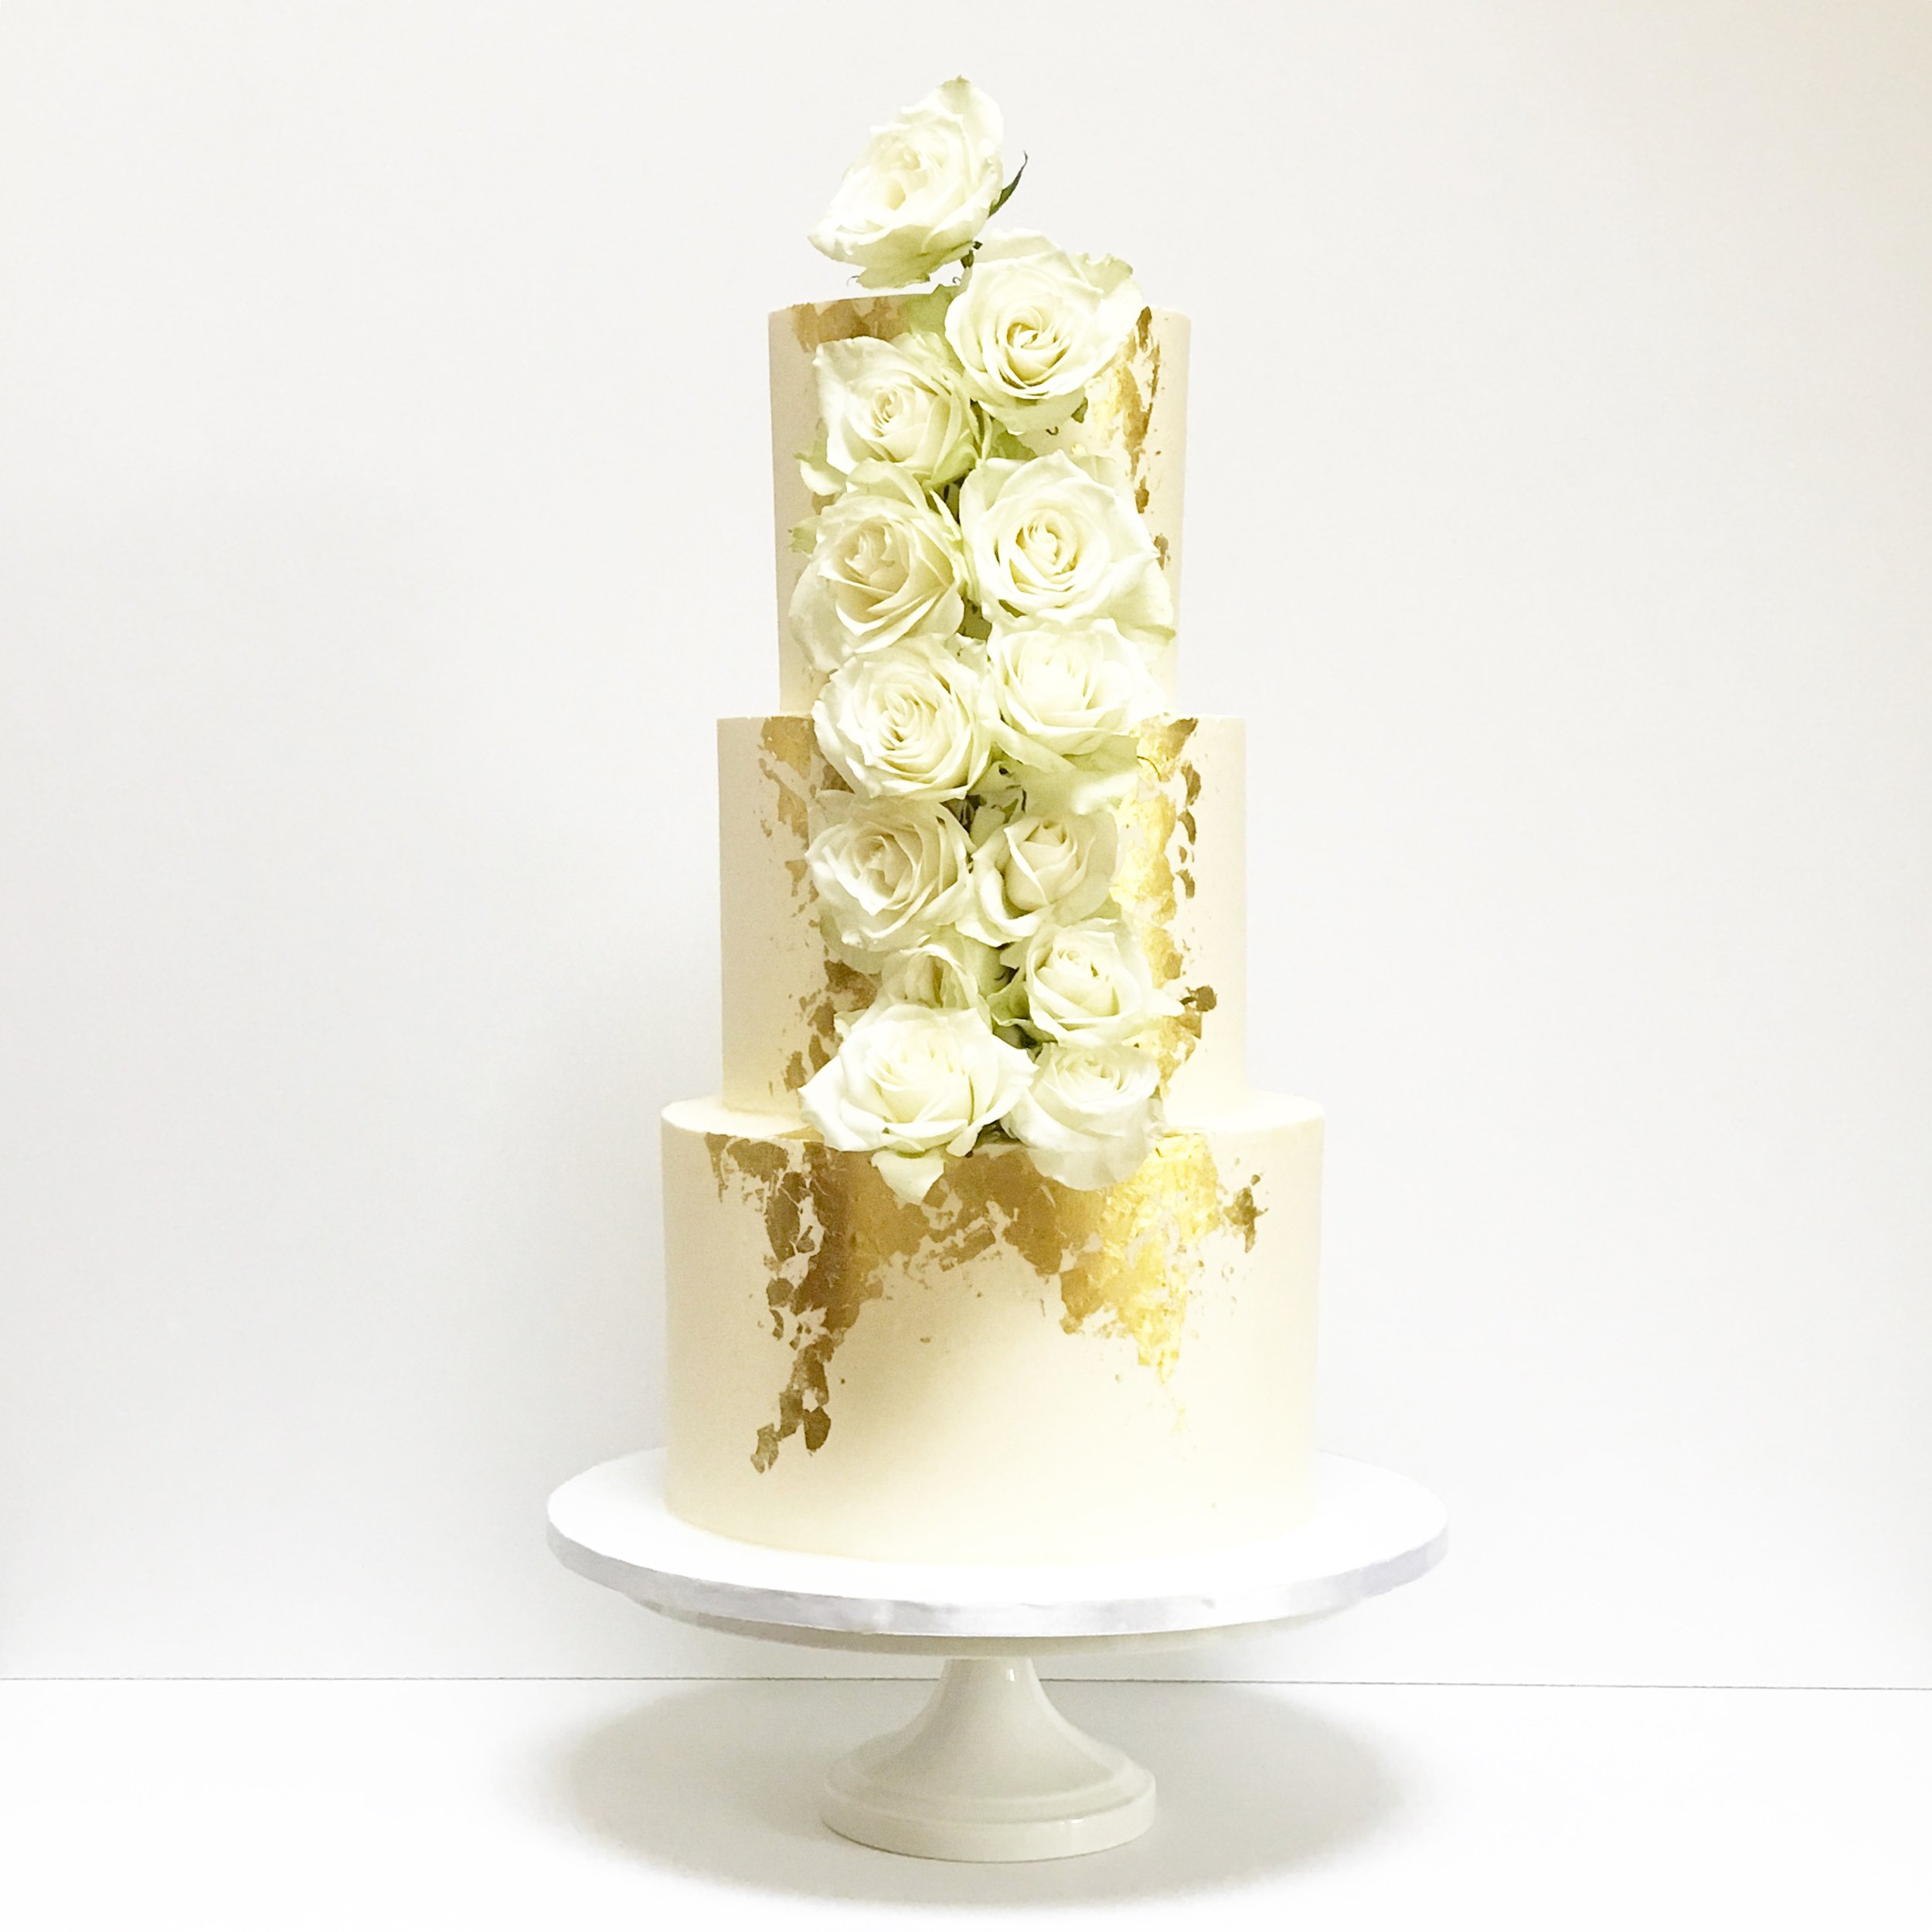 Gold Framed Roses Wedding Cake.JPG